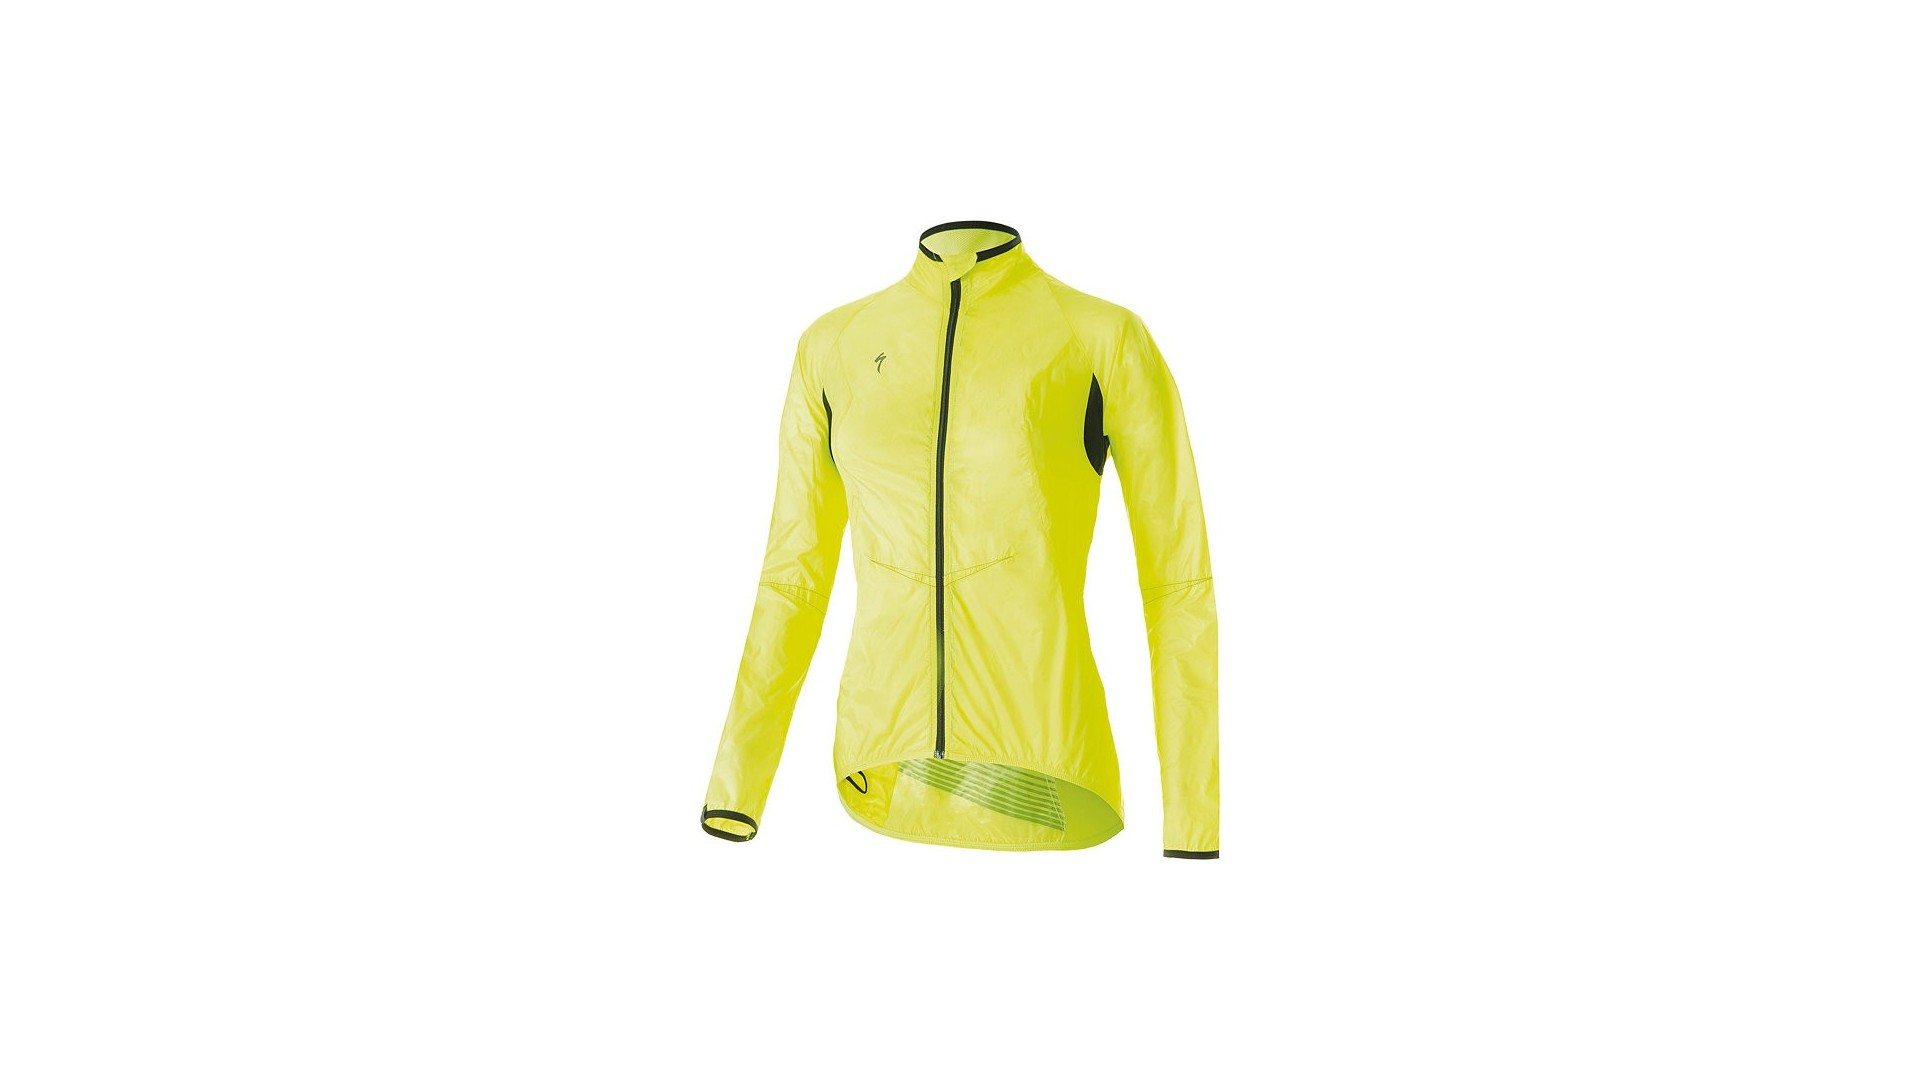 Deflect Comp Chaqueta Specialized Pack8 Mujer (XS1 S2 M3 L1 XL1) 2020  Neon Yellow 1 IBKBike.es